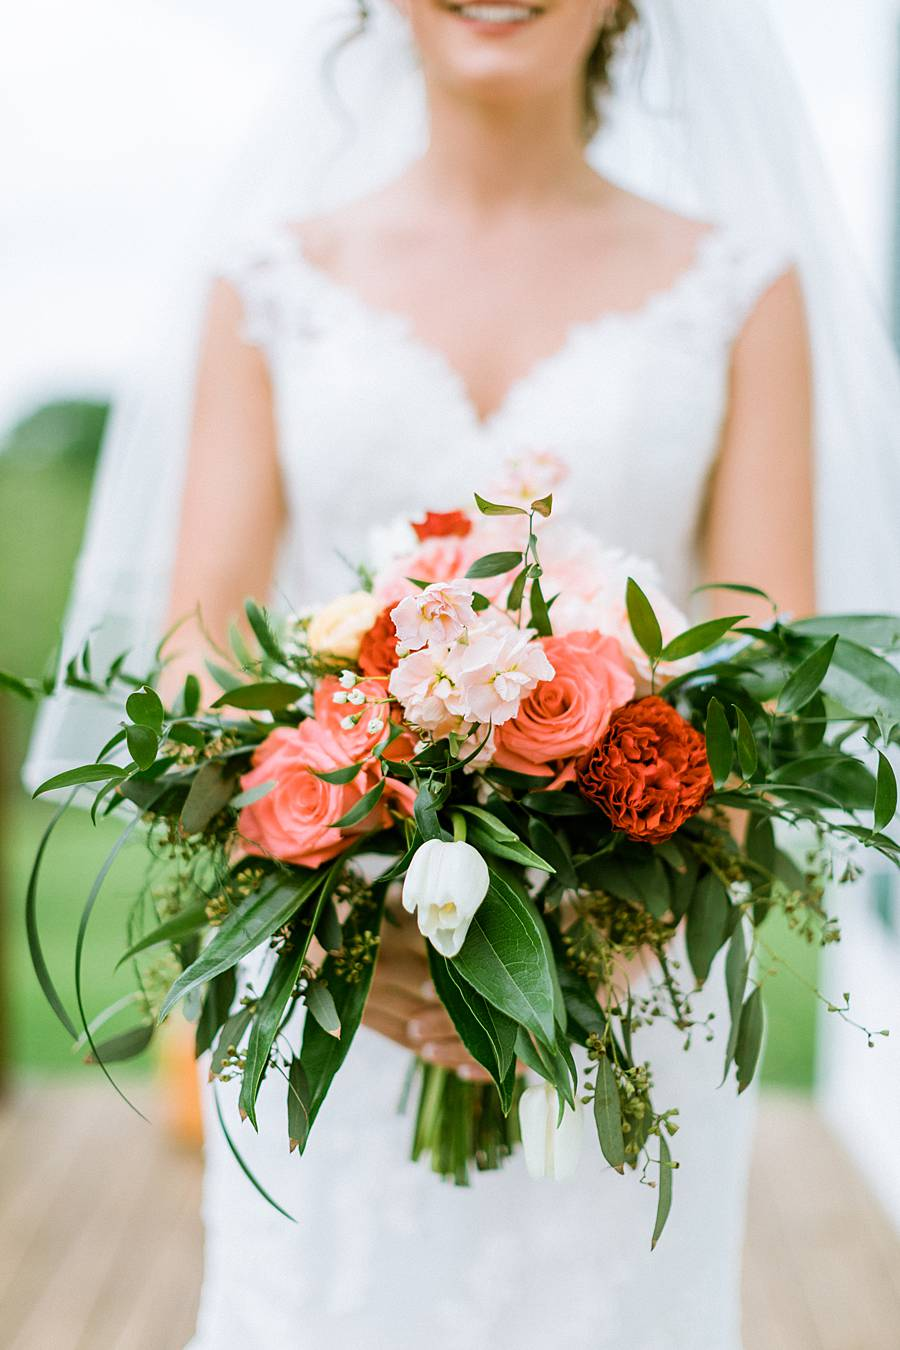 julia ryan kentucky farm wedding 307_web